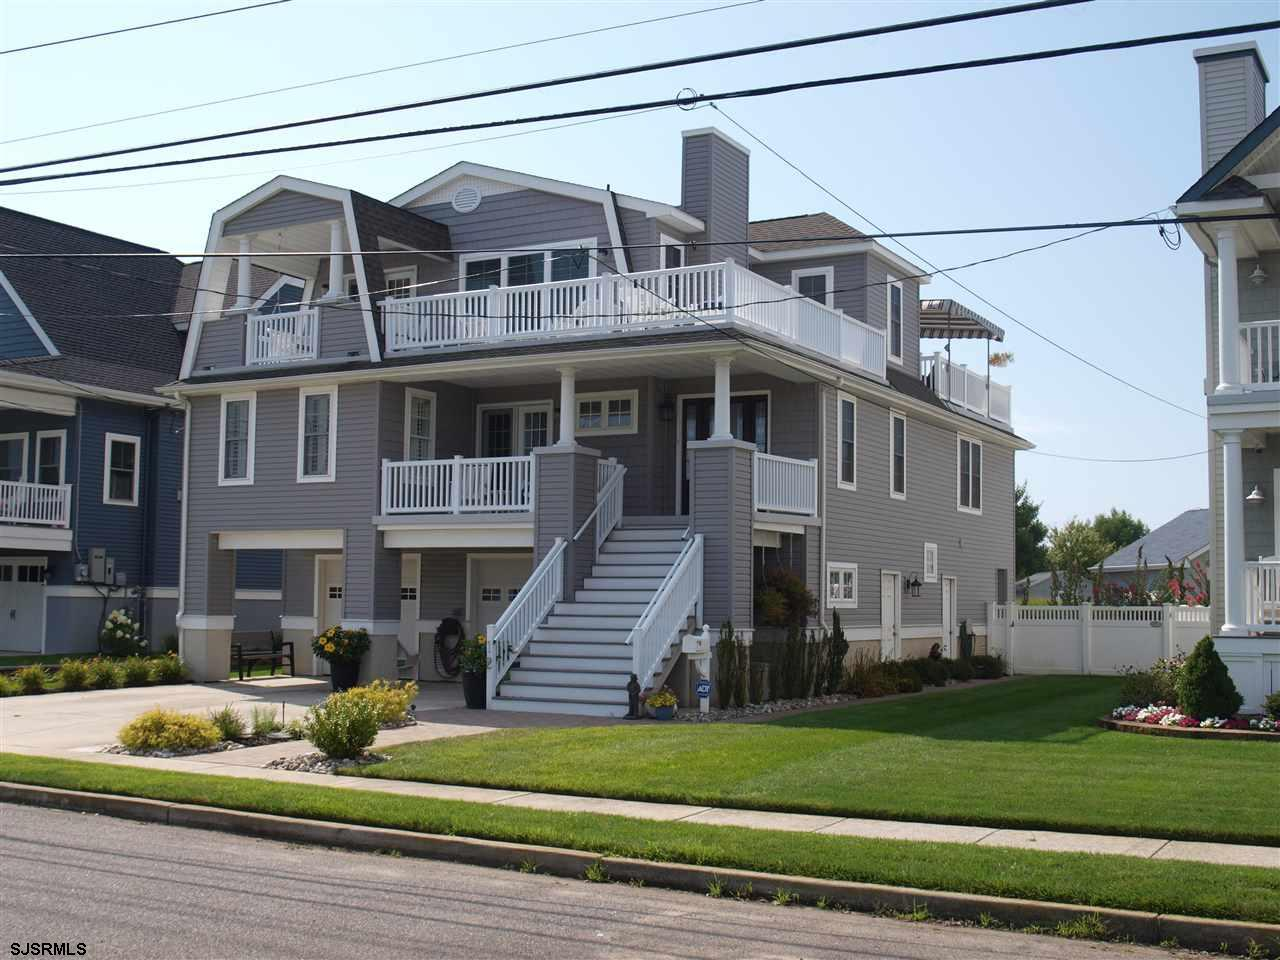 12 Roosevelt Blvd, Ocean City, NJ 08226